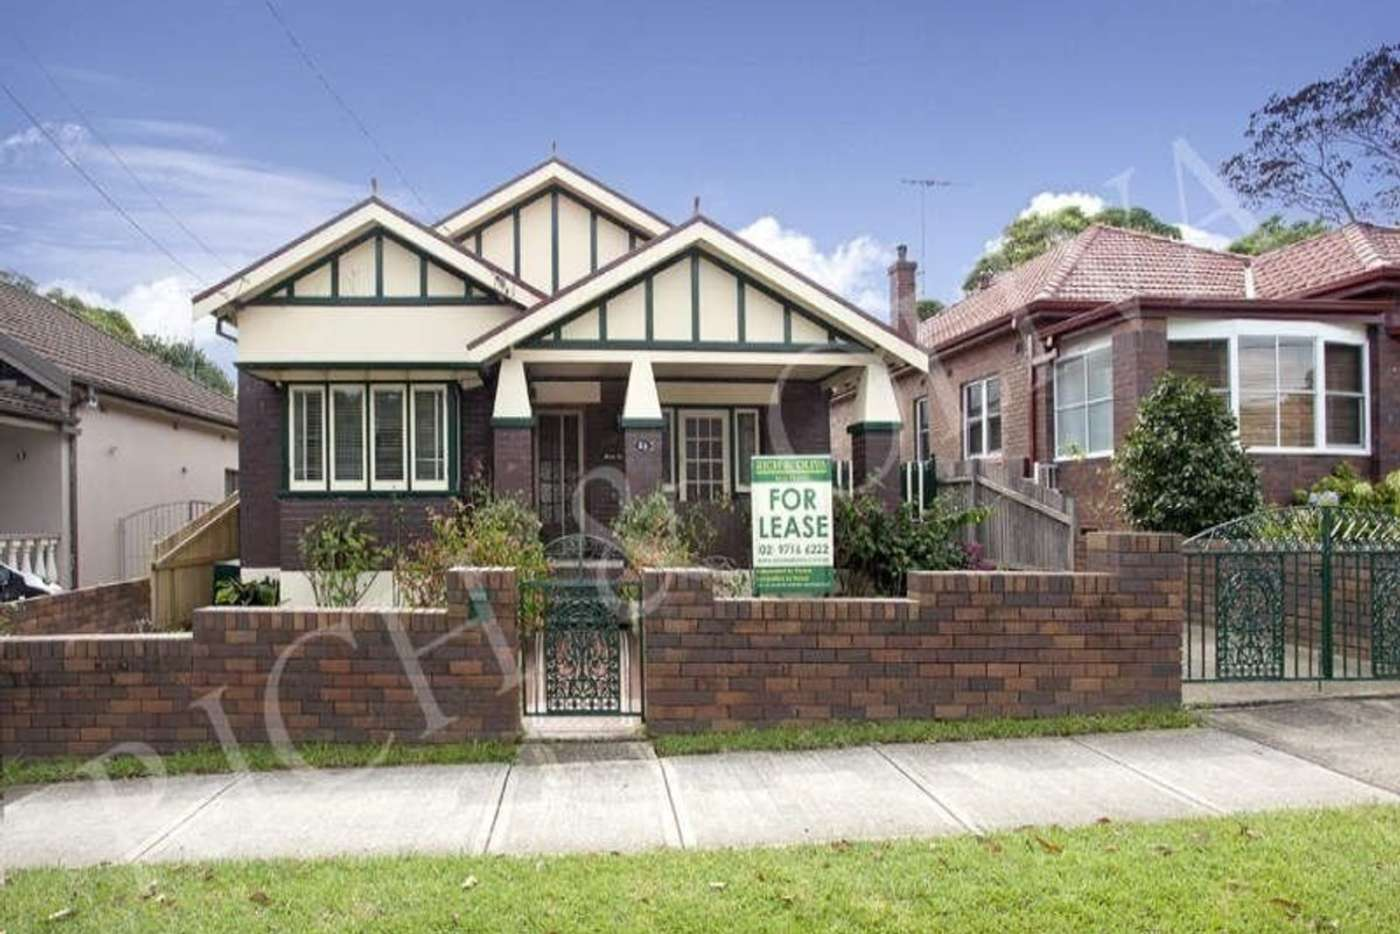 Main view of Homely house listing, 23 Crieff Street, Ashbury NSW 2193